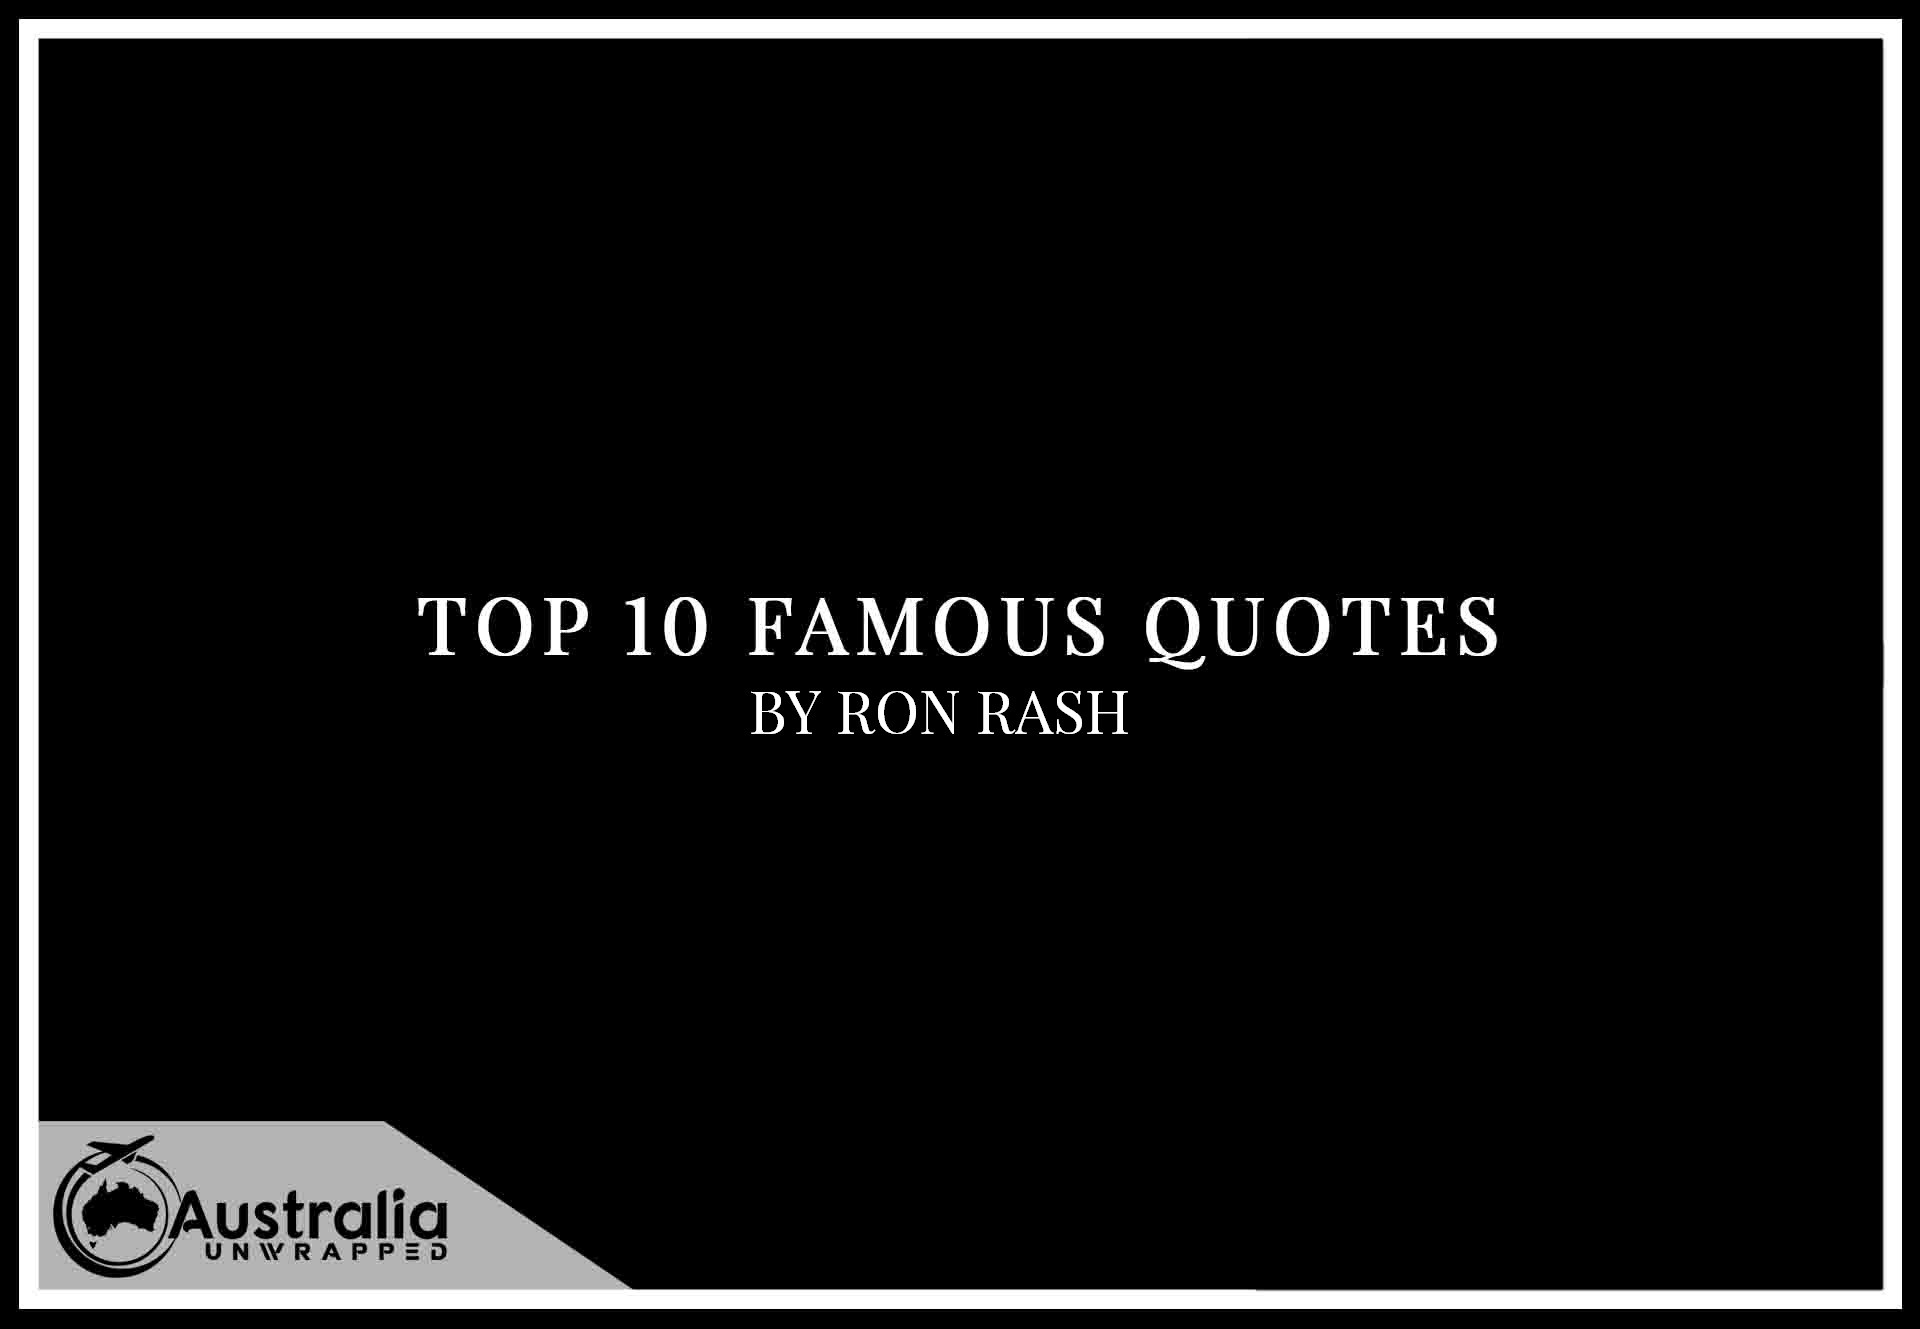 Top 10 Famous Quotes by Author Ron Rash